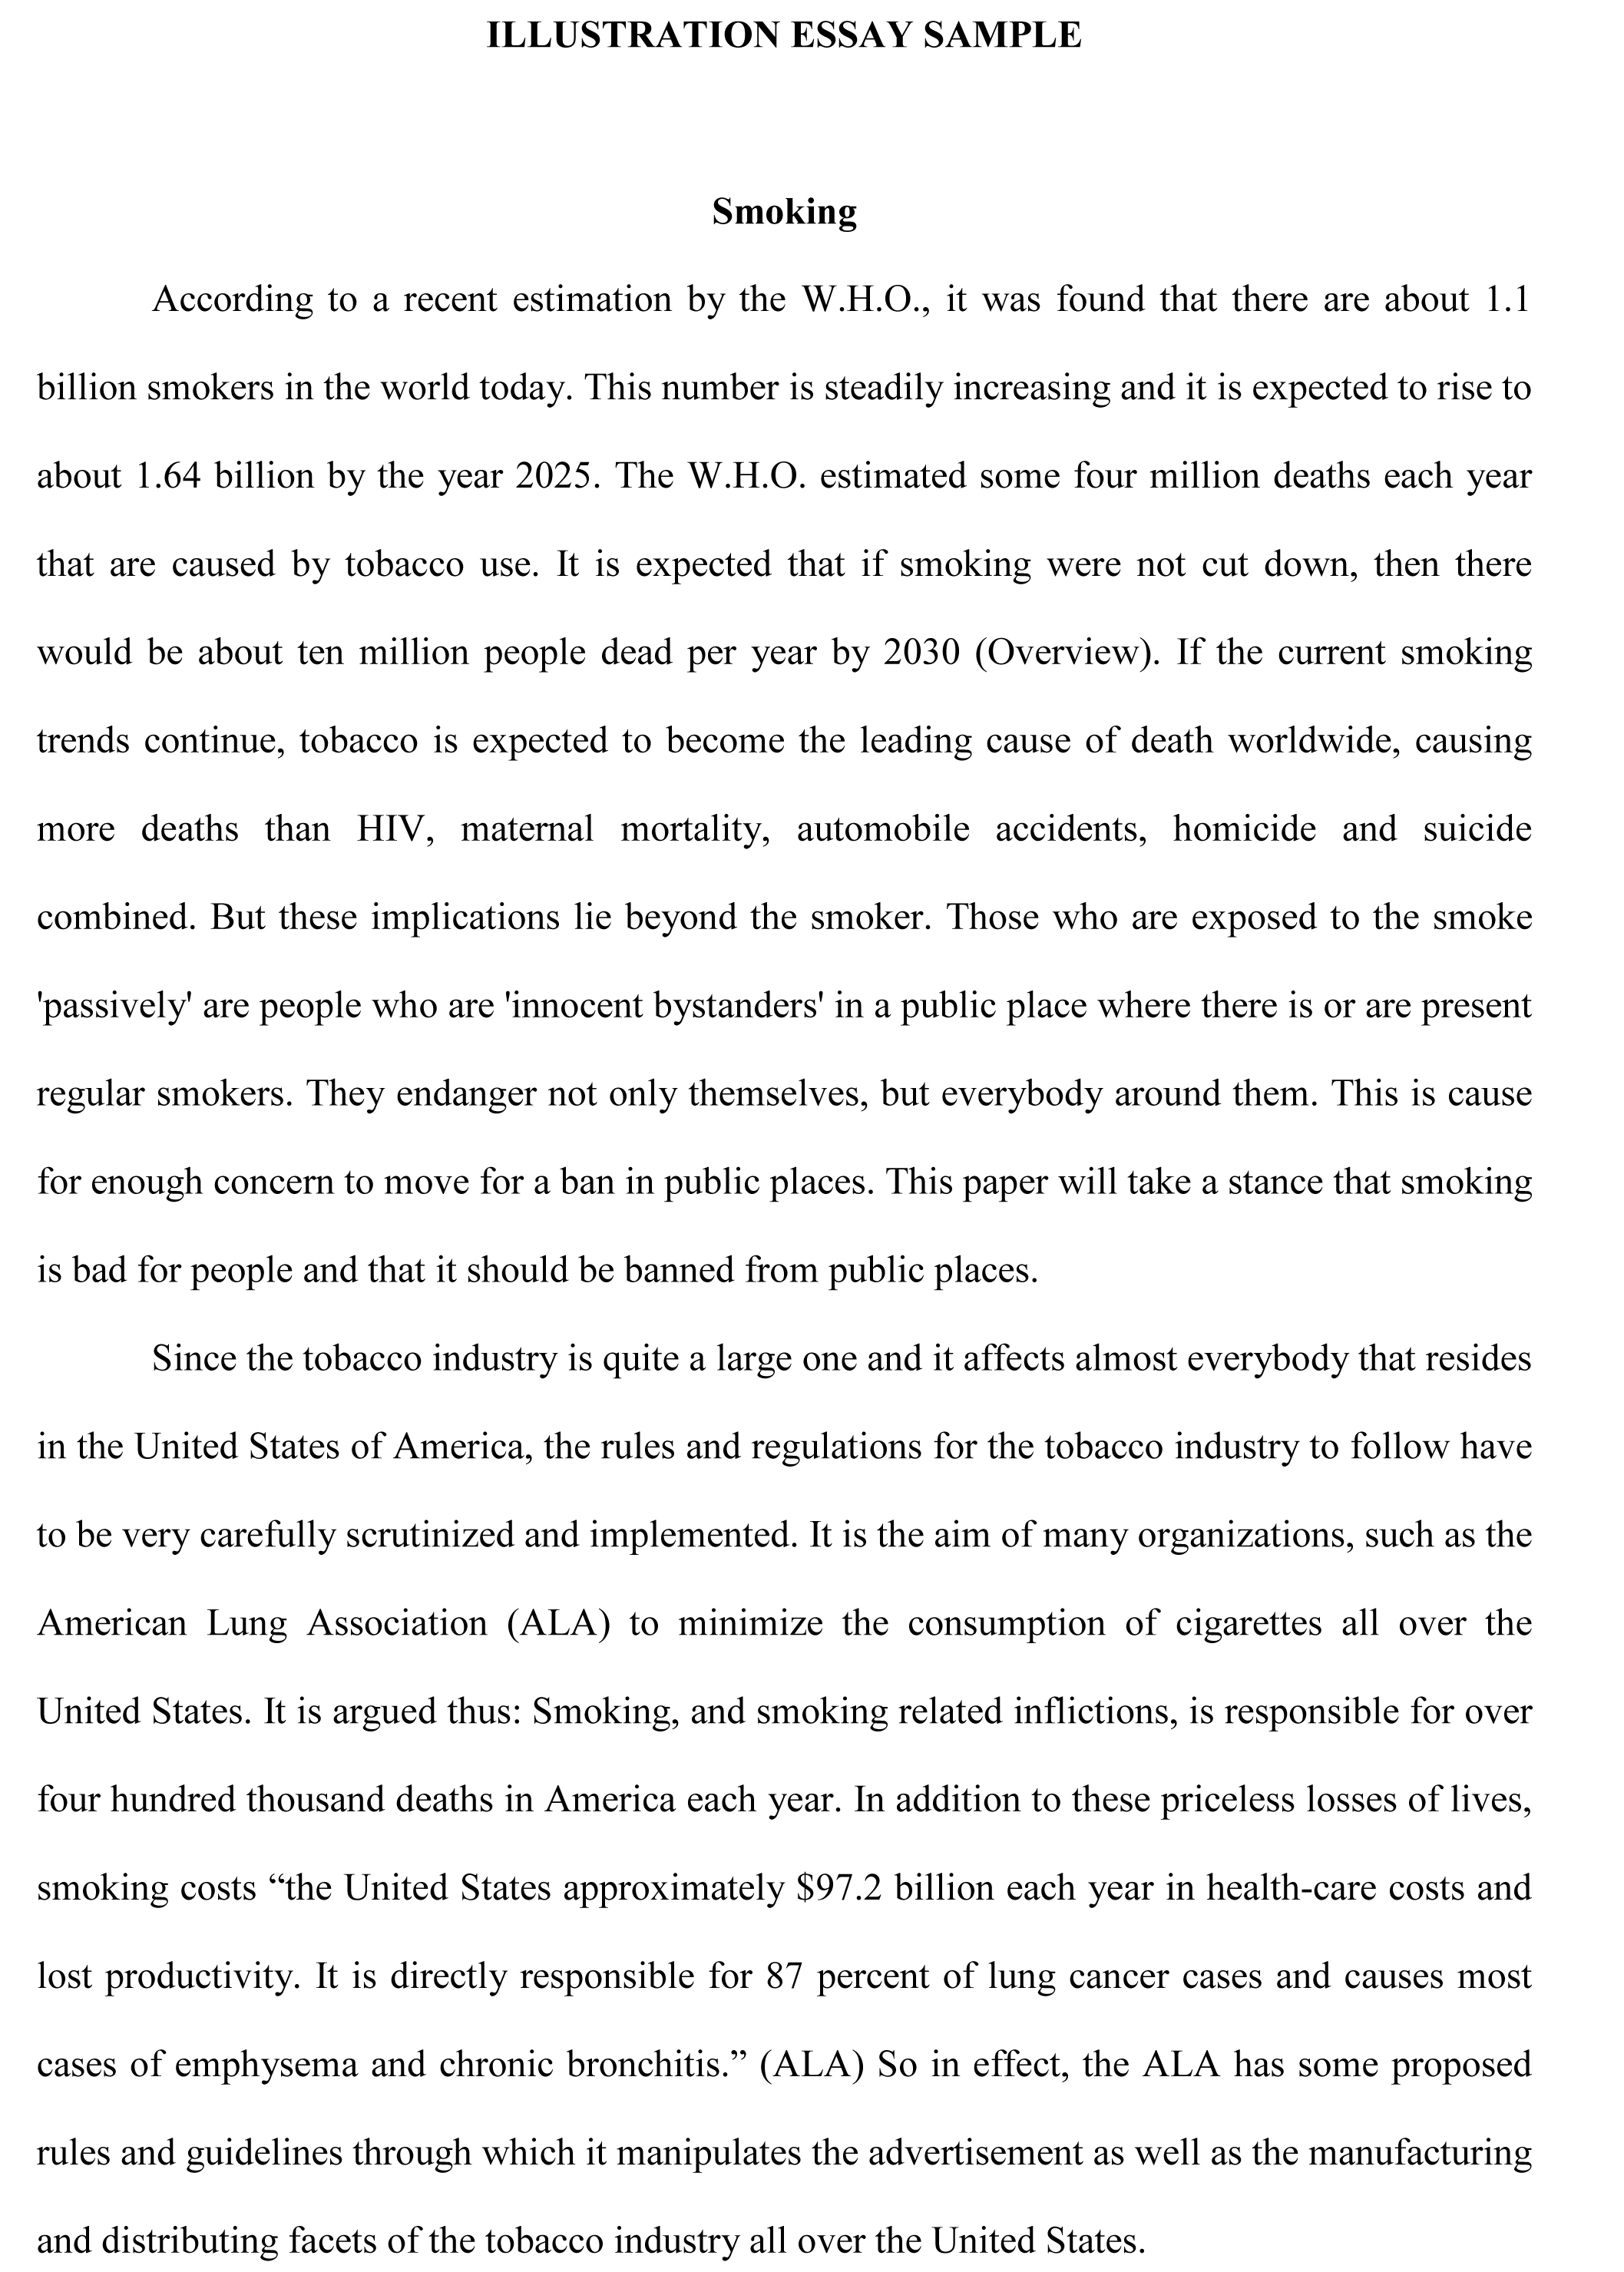 007 Essay Example Illustration Sample Act Fearsome Examples Good Score To Use Full